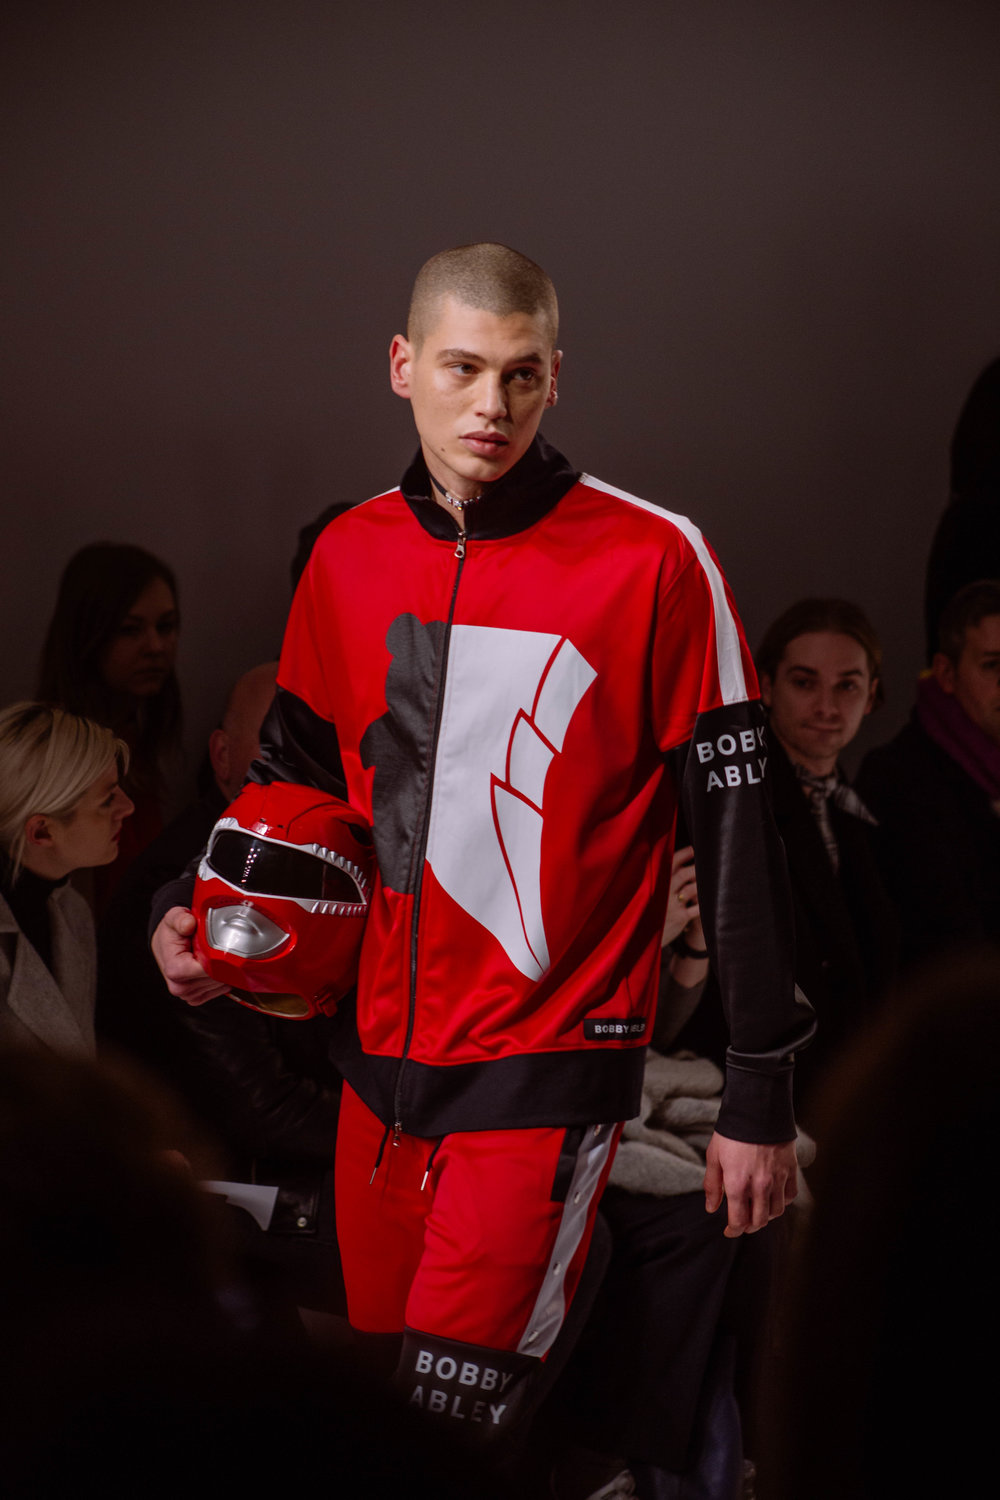 Bobby Abley; photography by Federica Tenti